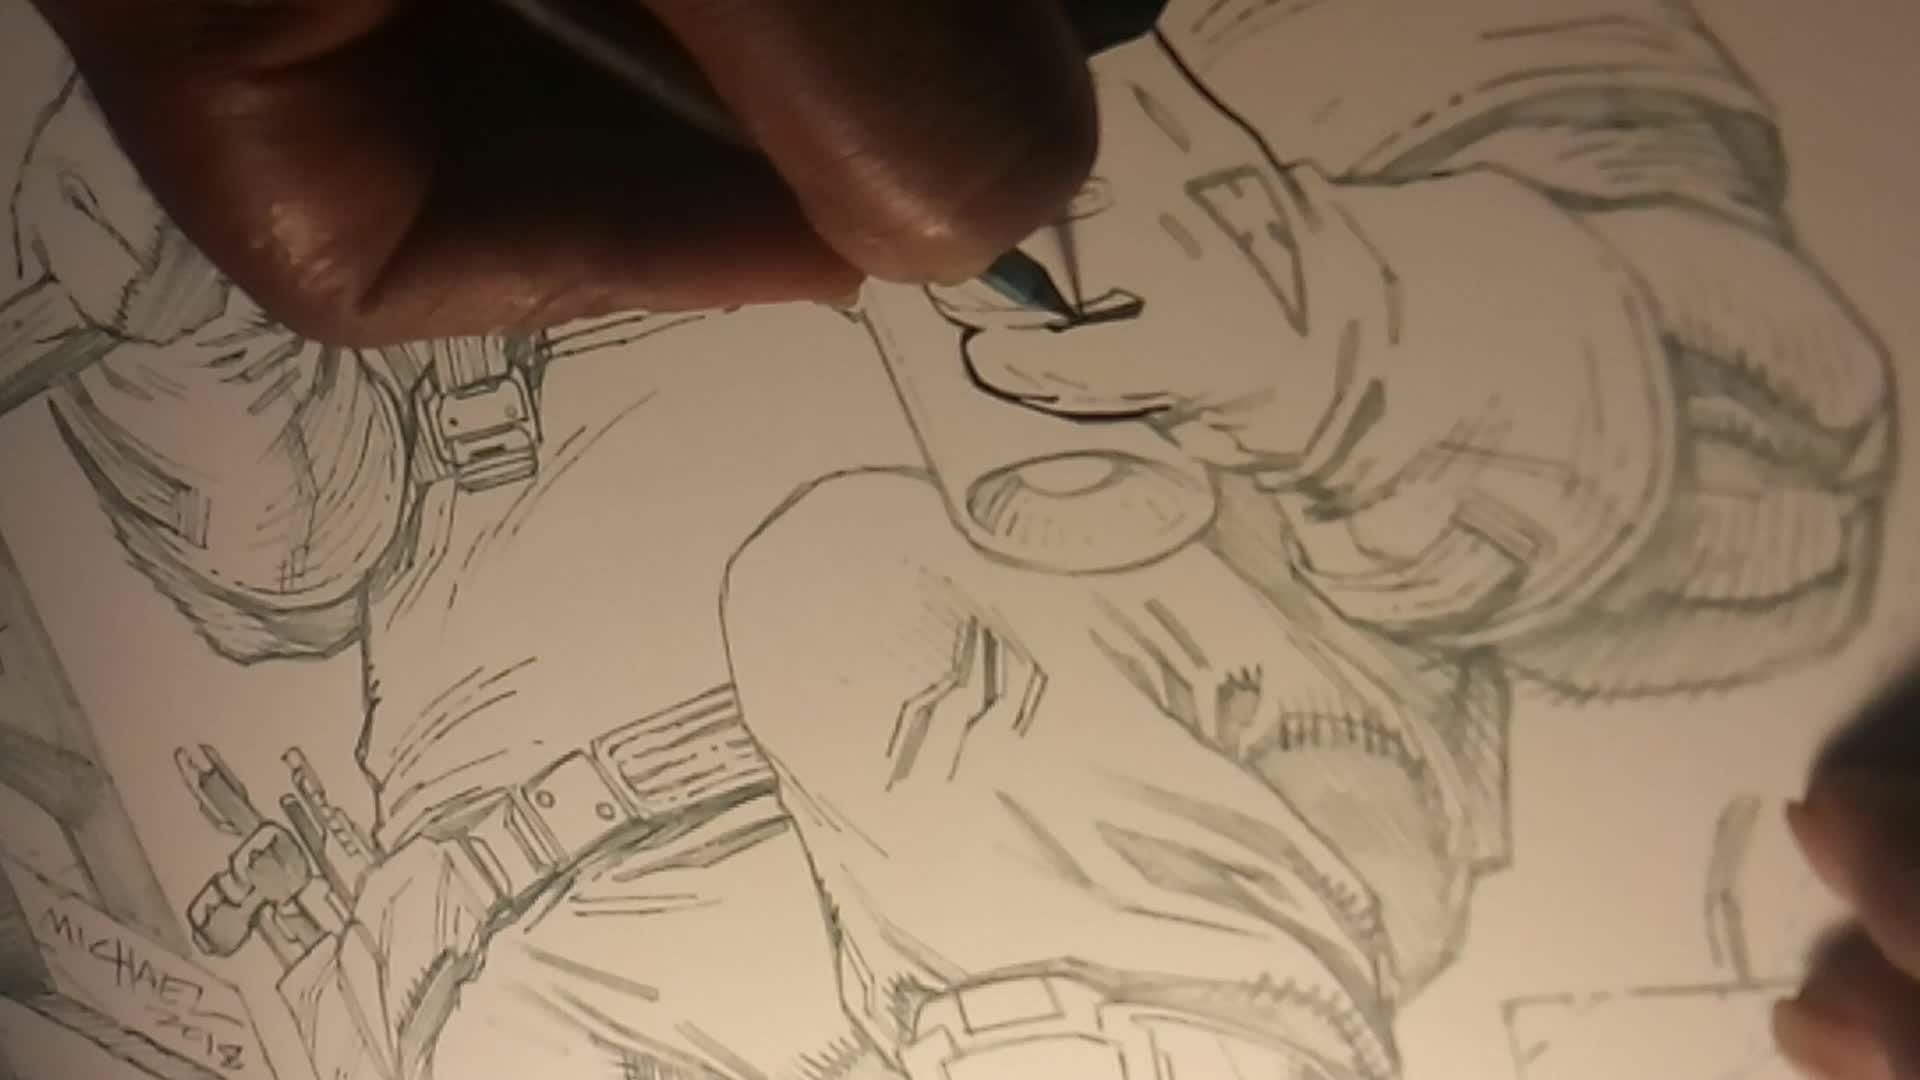 Rogue Universe: Discussion - Behind the Scenes - Inking one of our characters video cover image 1